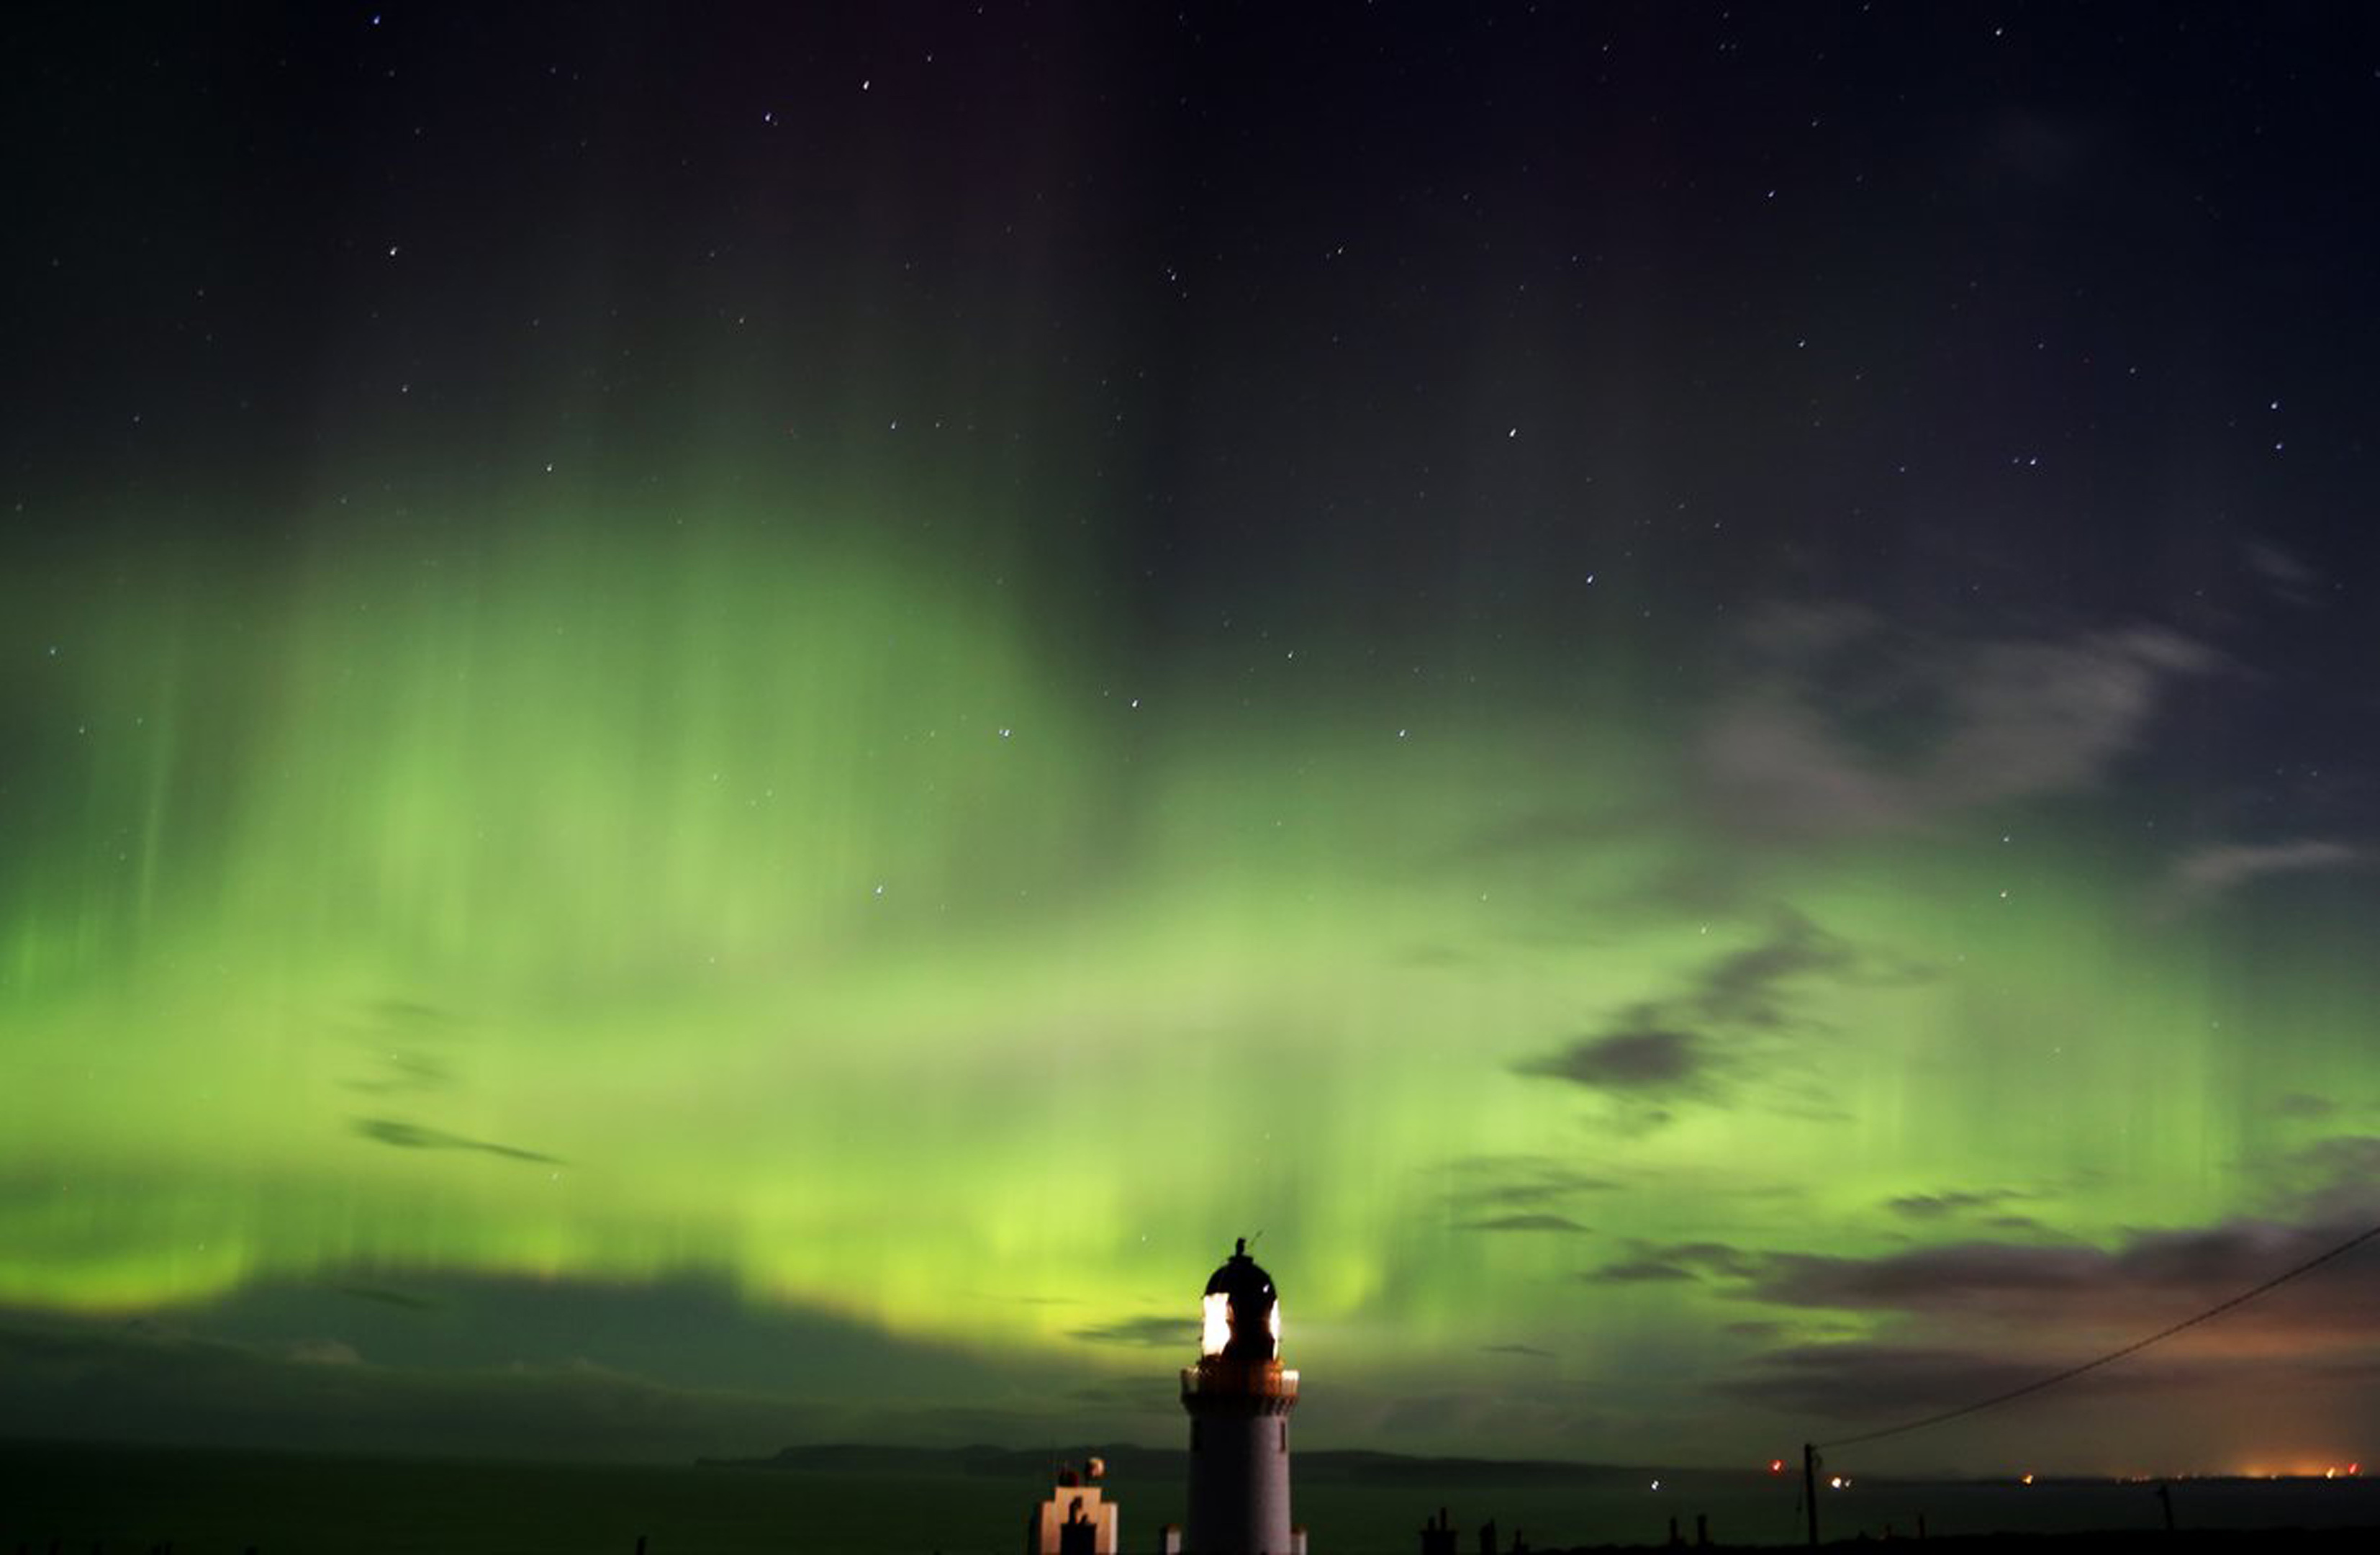 The Northern Lights at Dunnet Head in Scotland